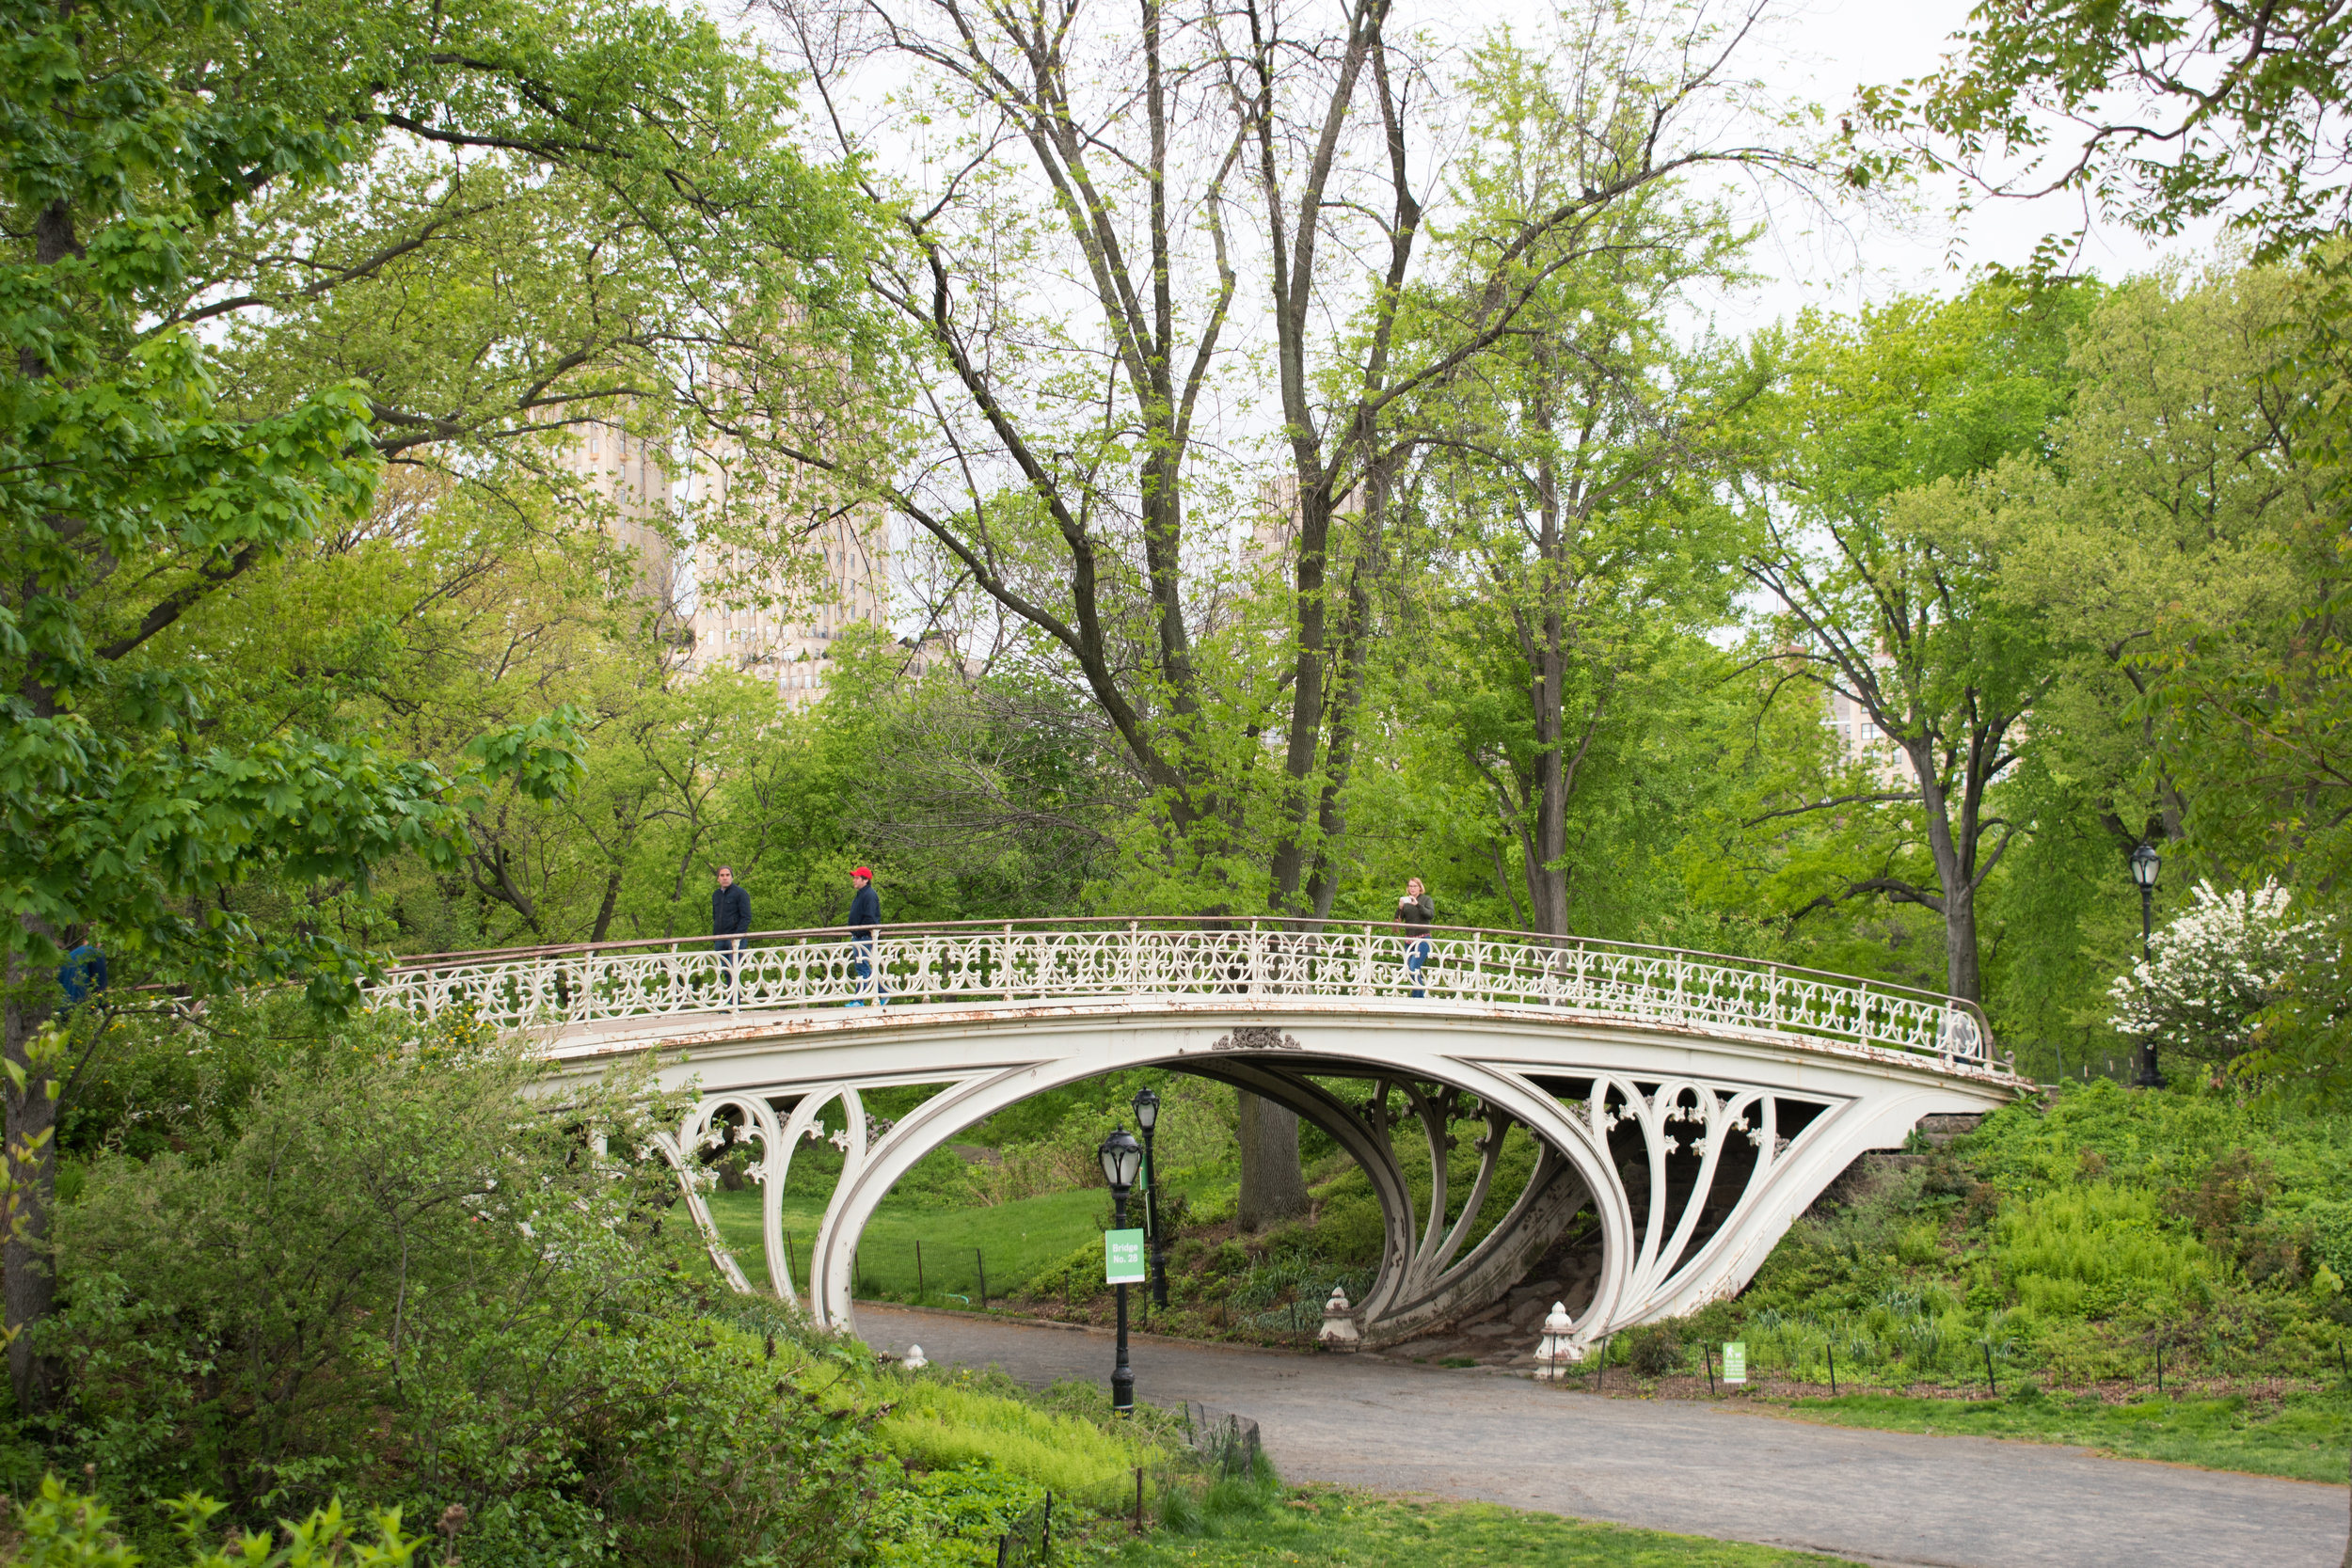 A Bridge in Central Park, New York